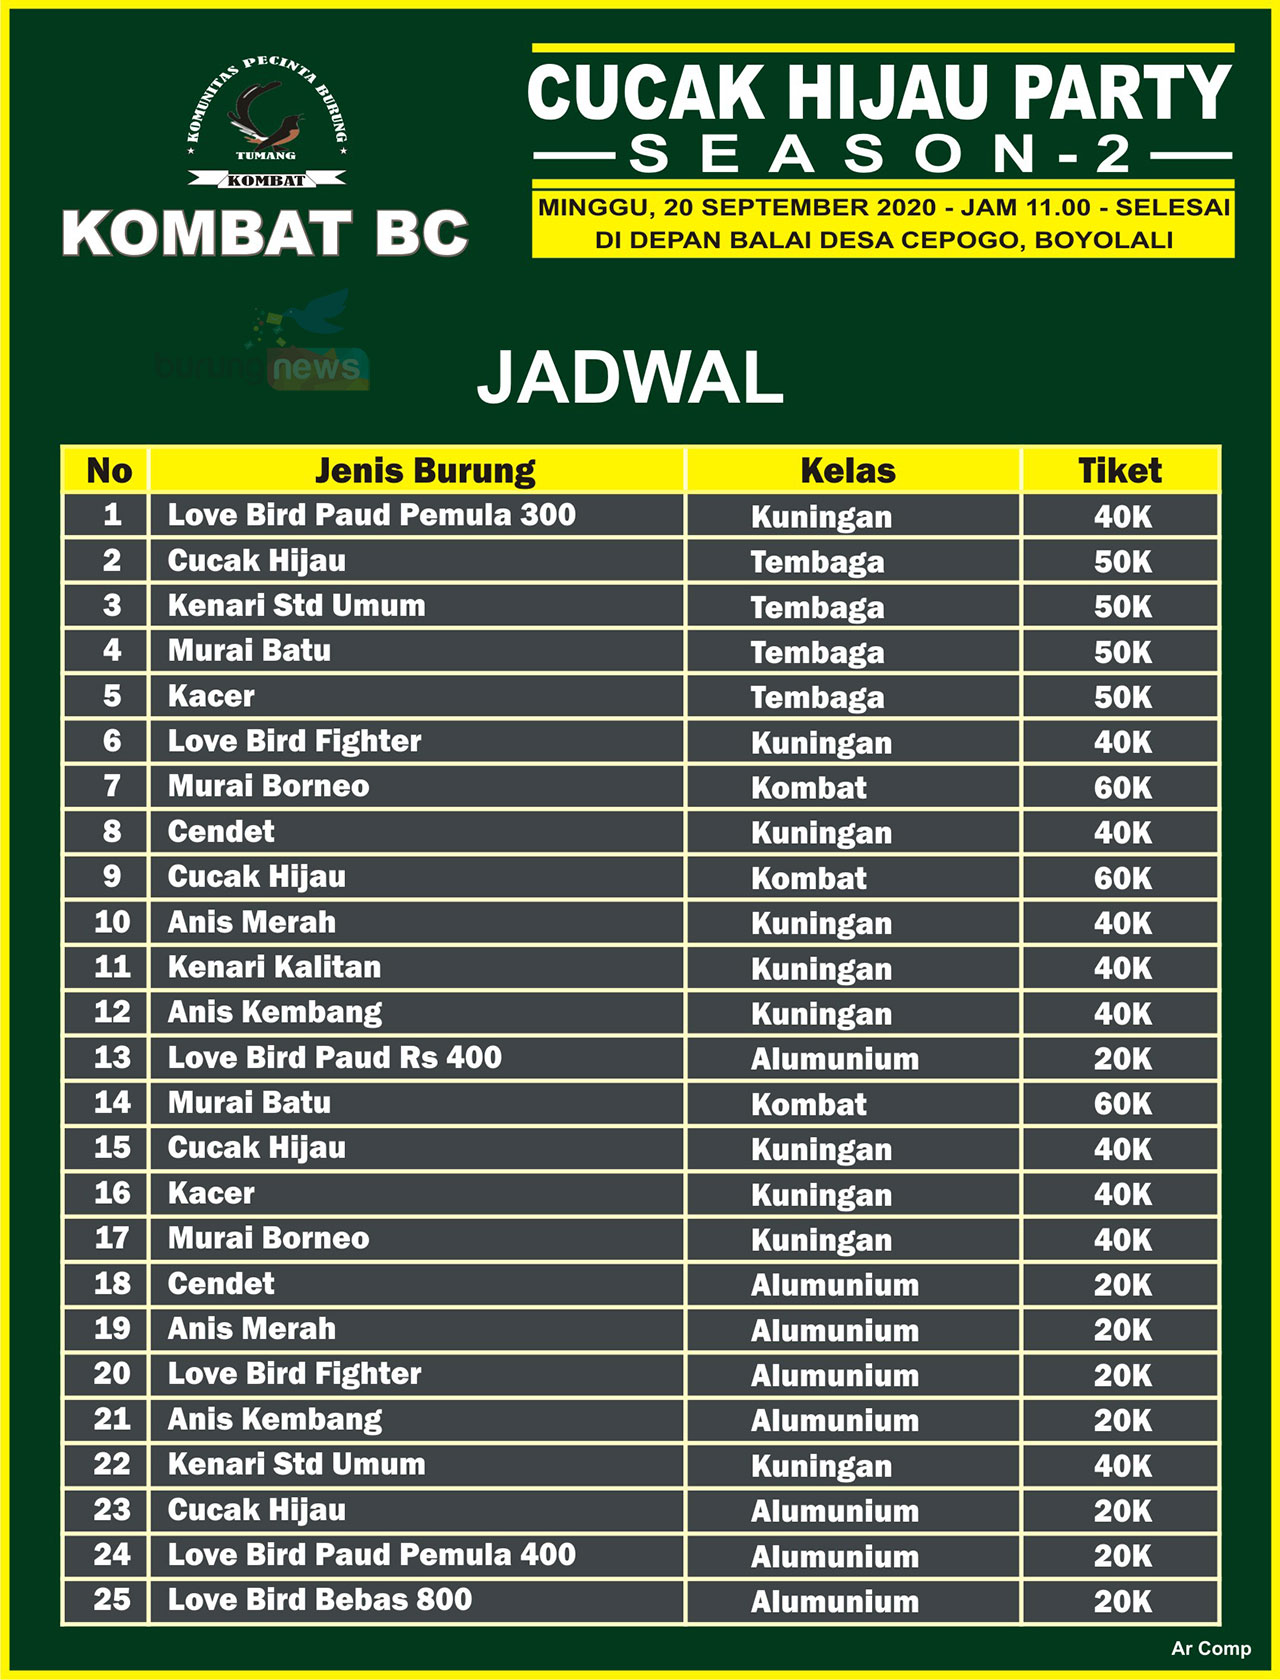 JADWAL LOMBA CUCAK HIJAU PARTY SEASON 2